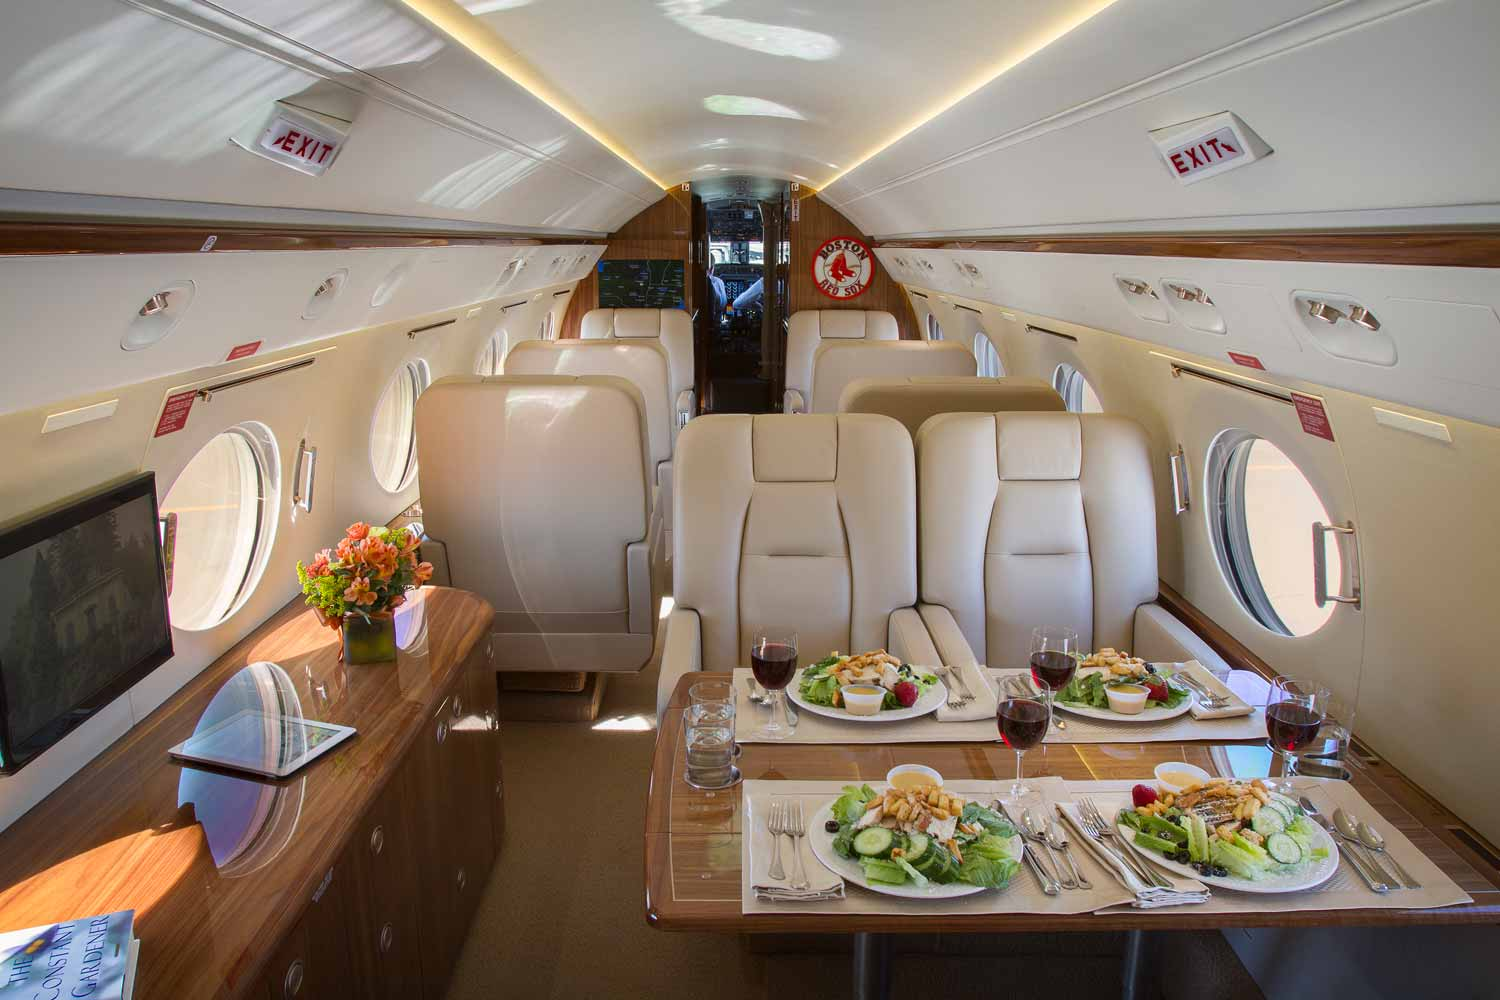 Plane Cabin. Tables served with food